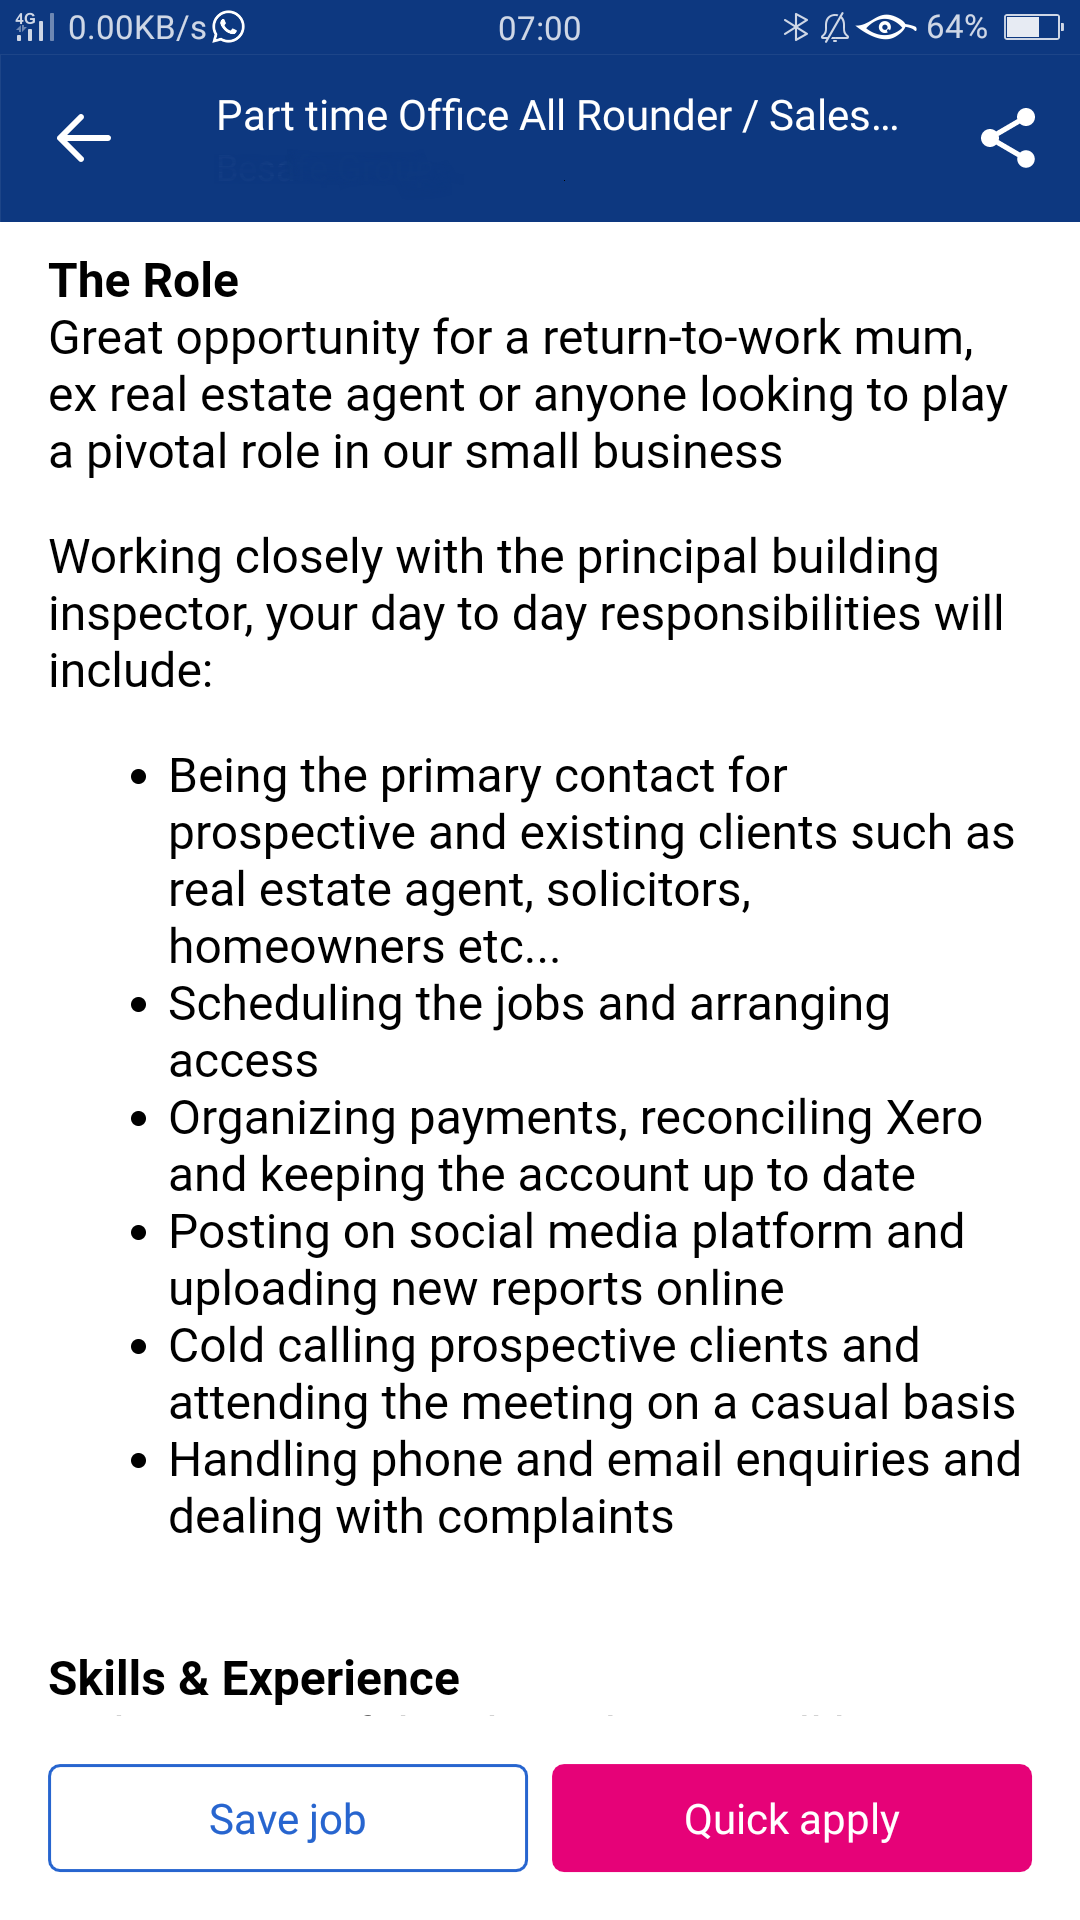 Daily Responsibilities for Office Admin Support Part time Job Ad in Sydney - Online Customer Service and Sales Training Courses